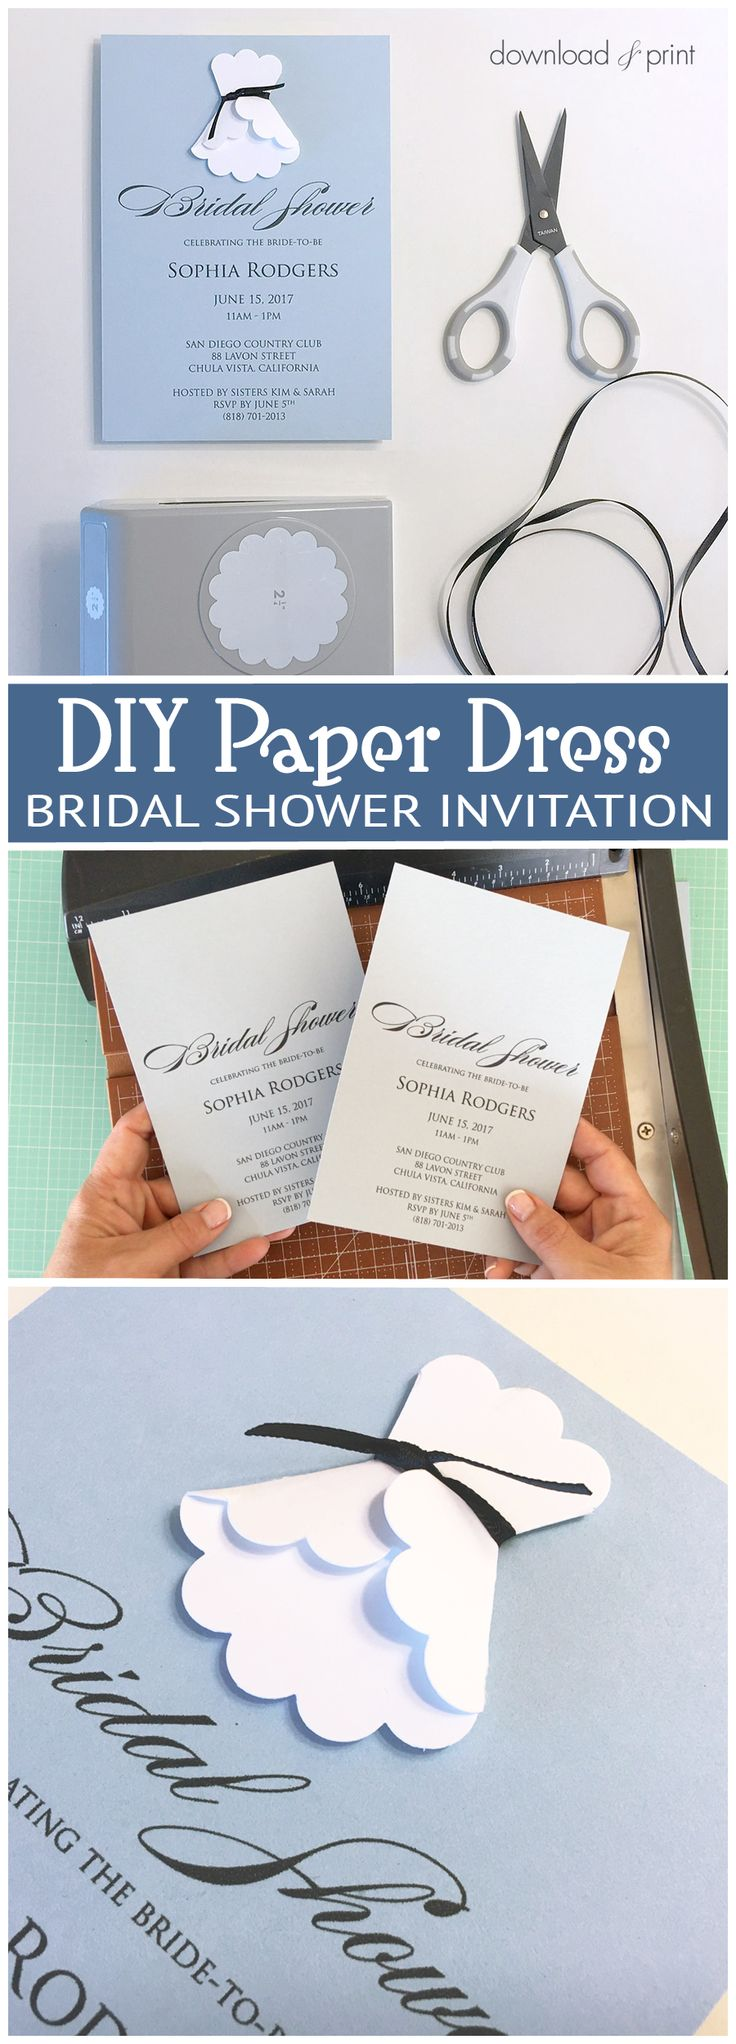 Sweet and simple bridal shower invitation with a DIY paper dress. Get the FREE printable invitation template at Download & Print.